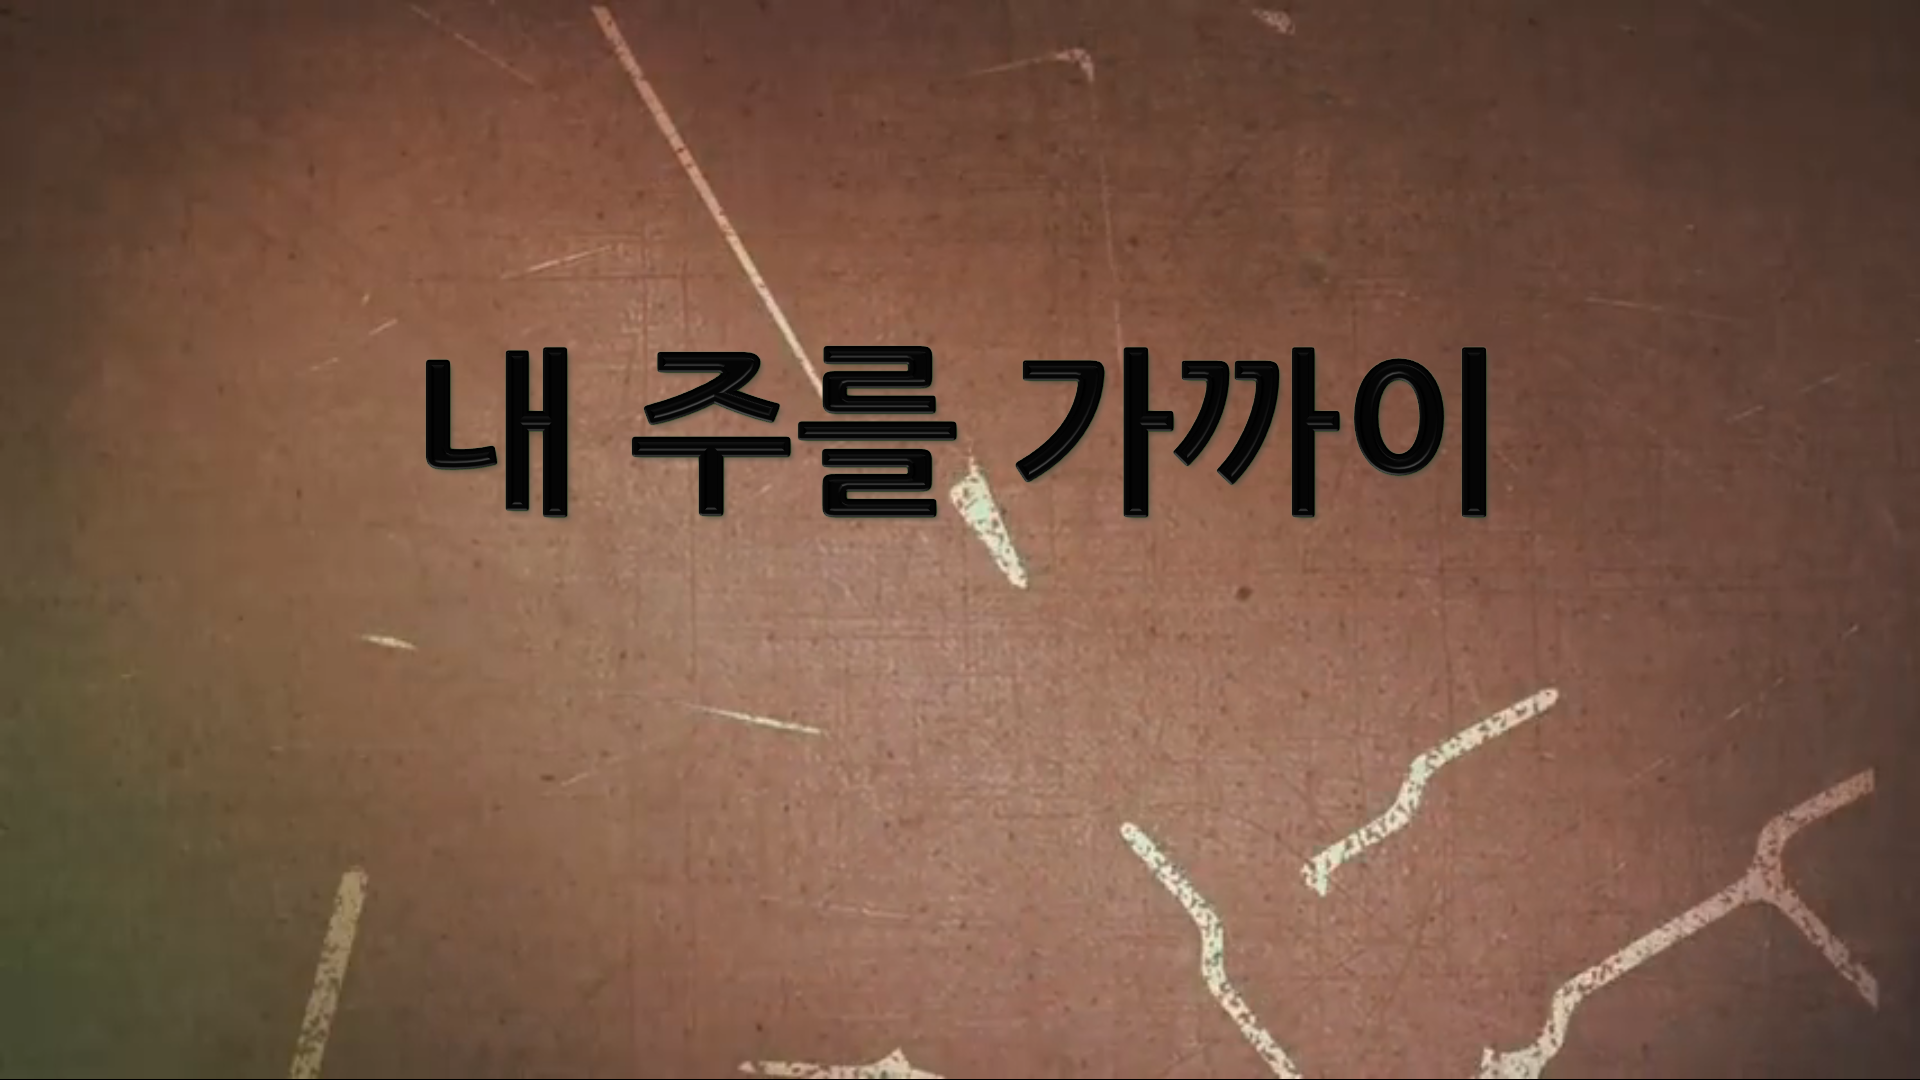 내 주를 가까이 Youtube video thumbnail.png